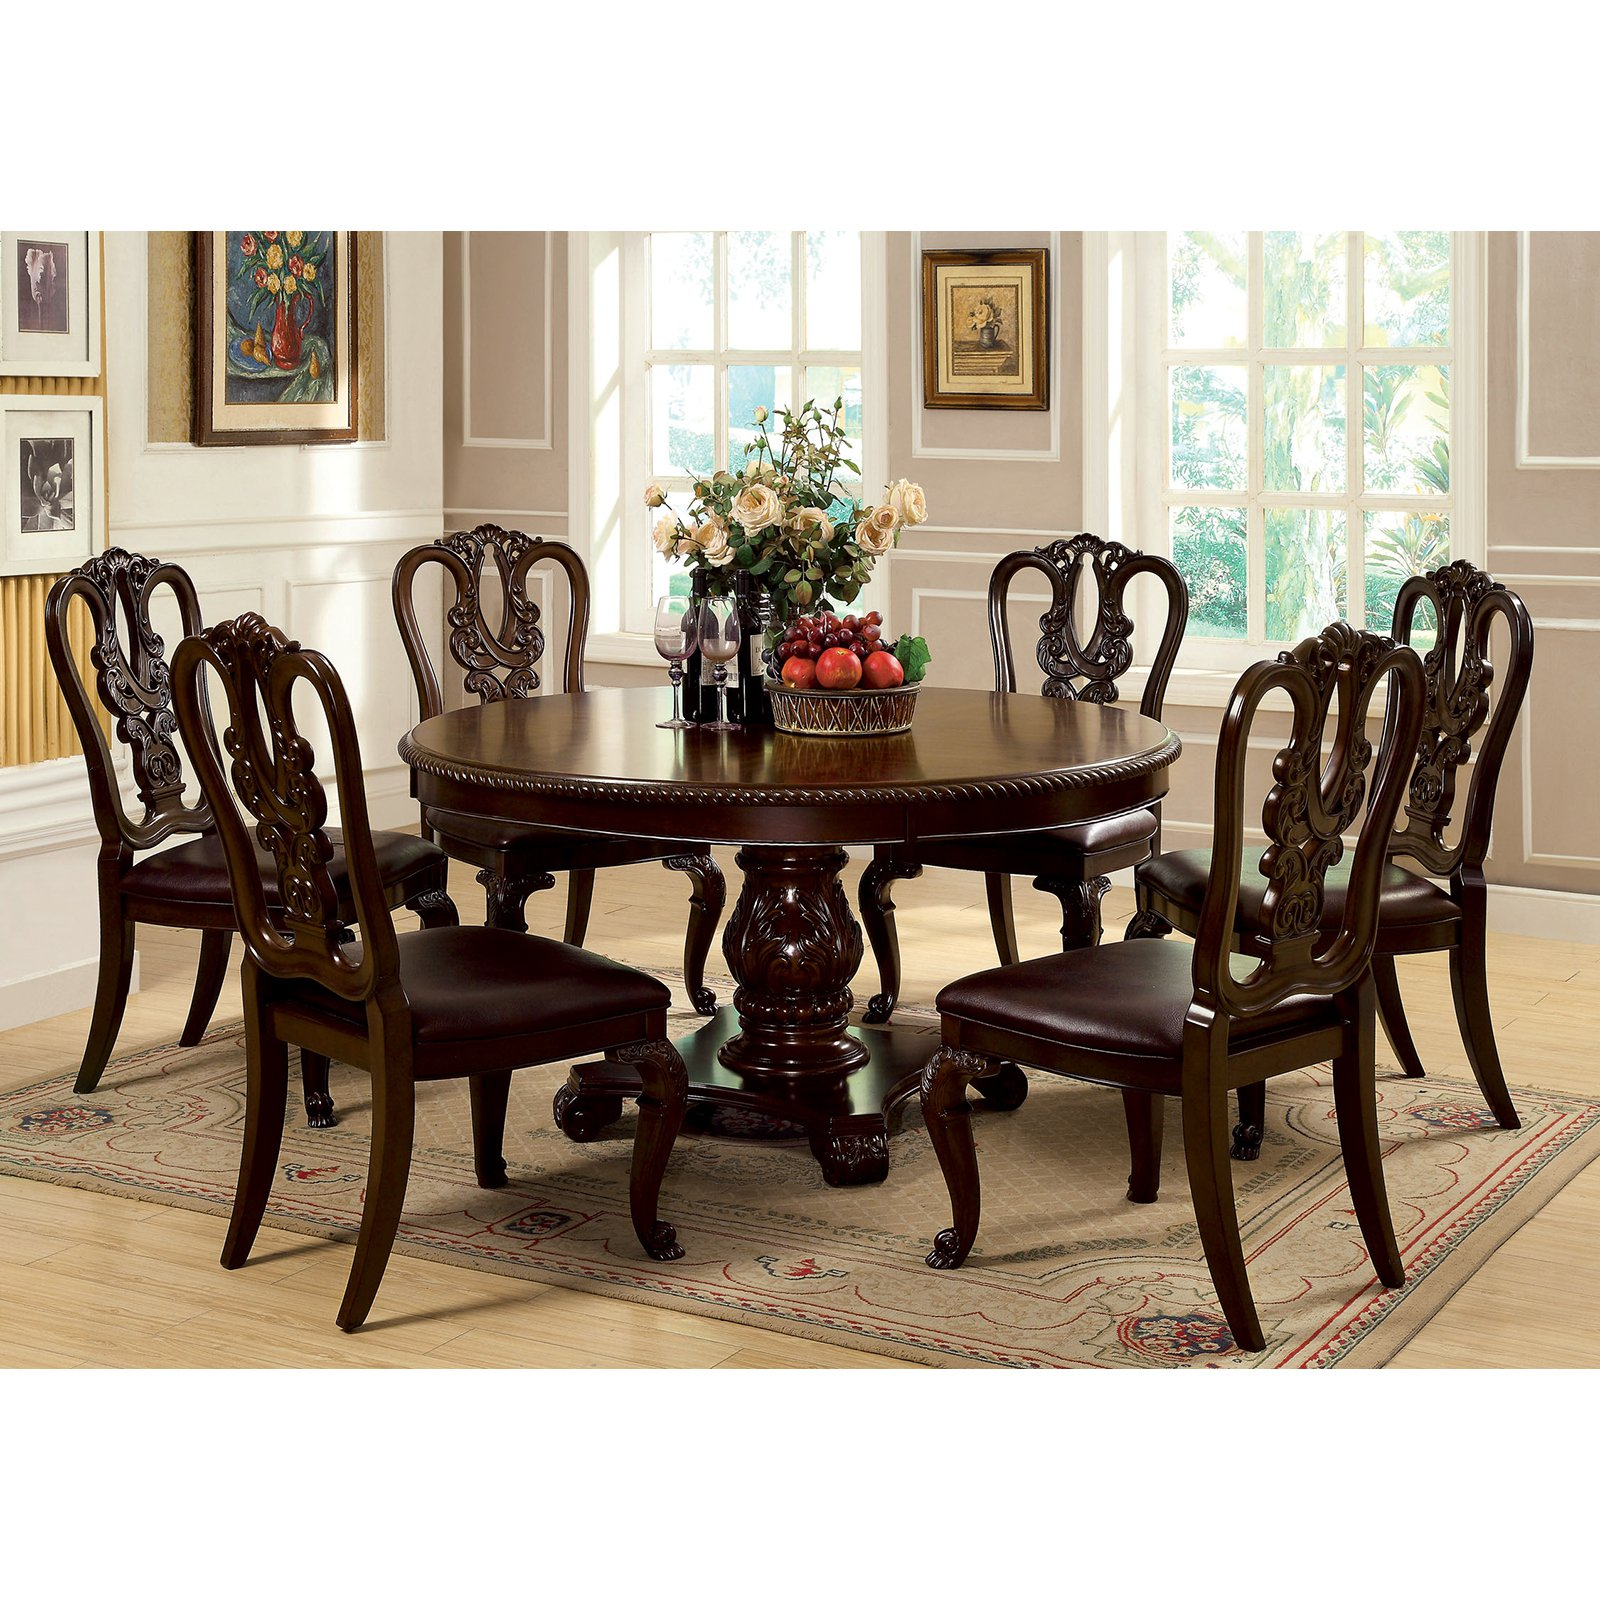 Furniture of America Berkshire Round Dining Table Brown Cherry by Enitial Lab